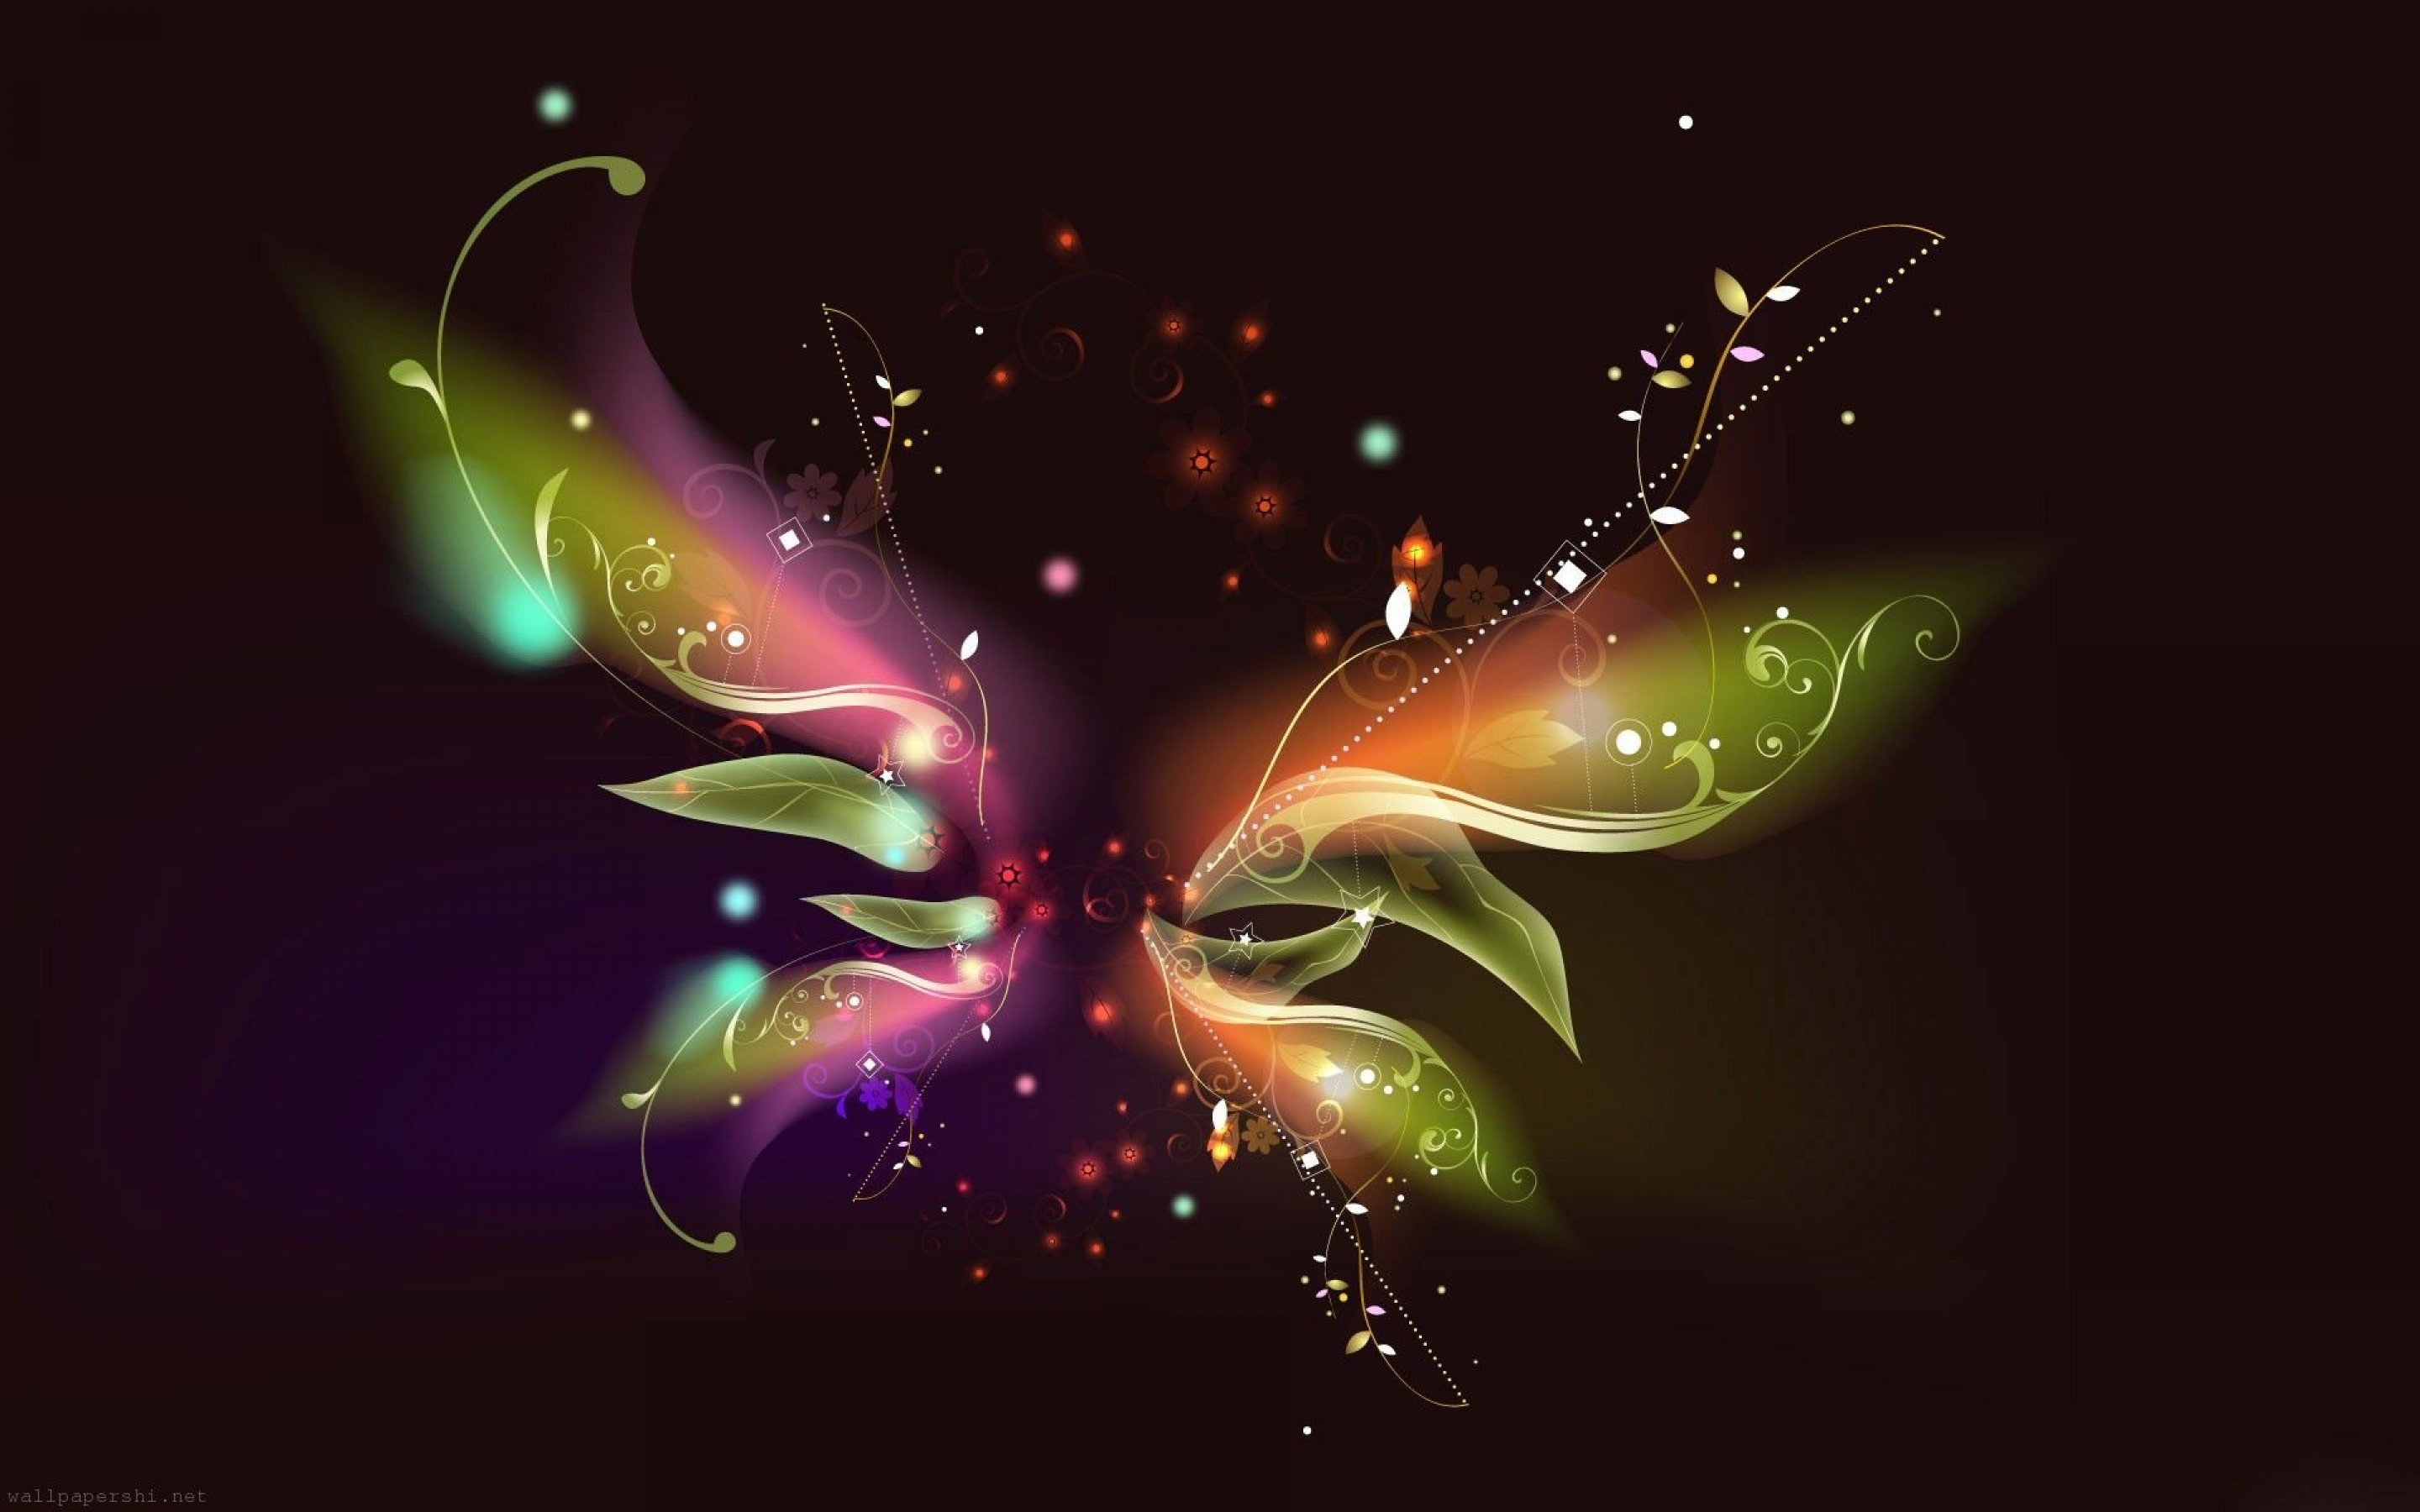 Butterflies Wallpaper Download Free Cool Full Hd Wallpapers For